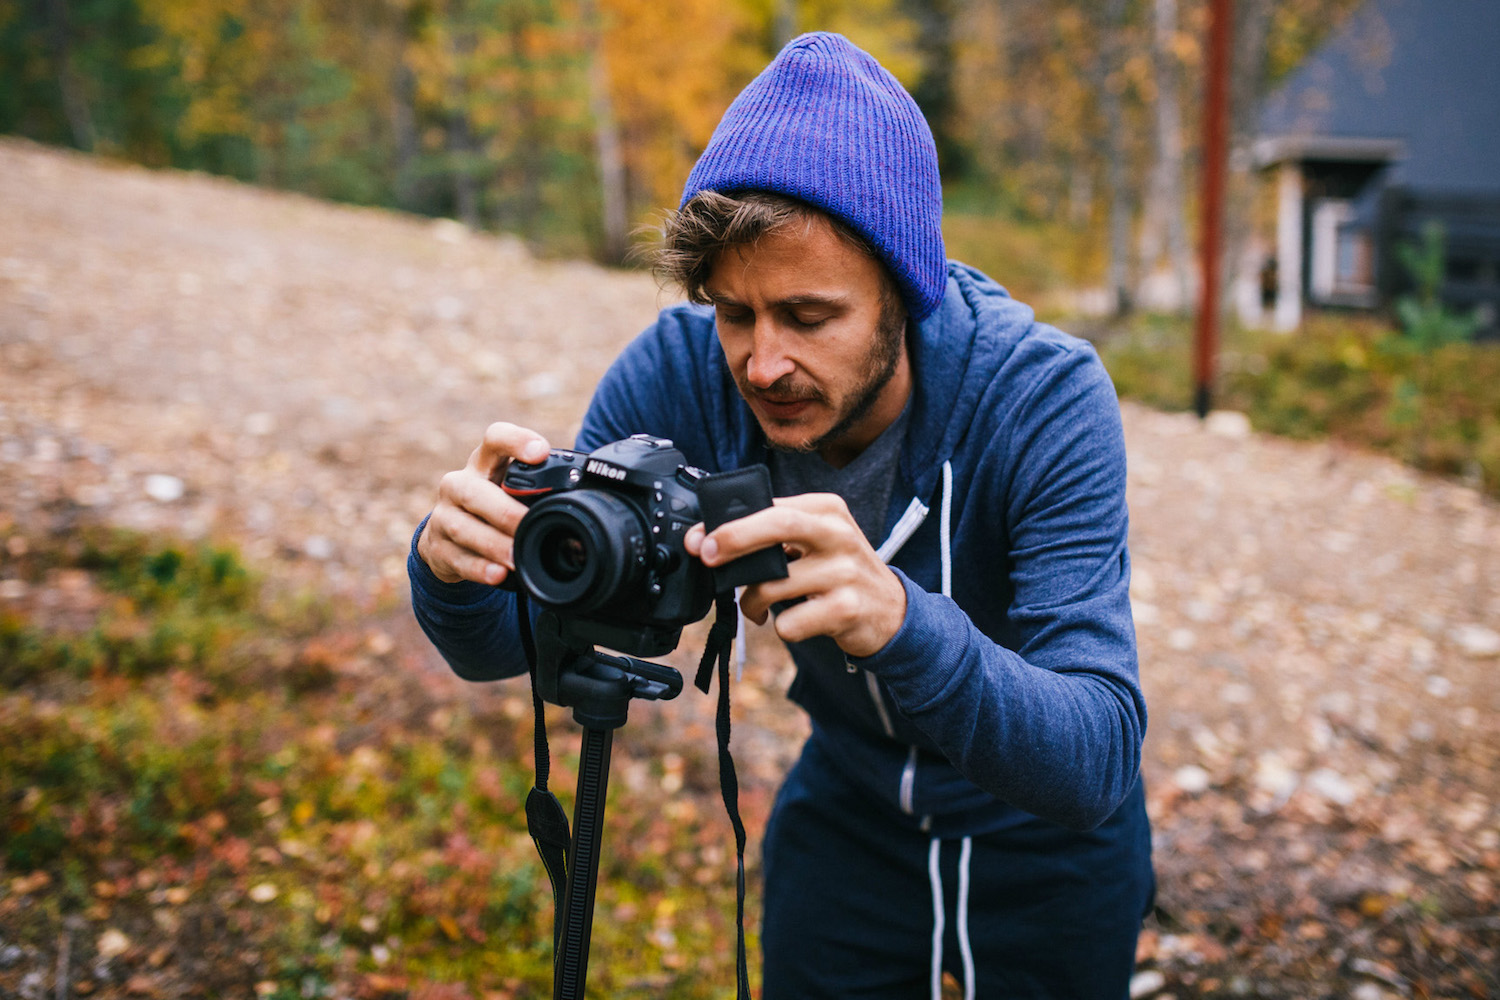 5 Useful Travel Photography Tips for the Visually Minded